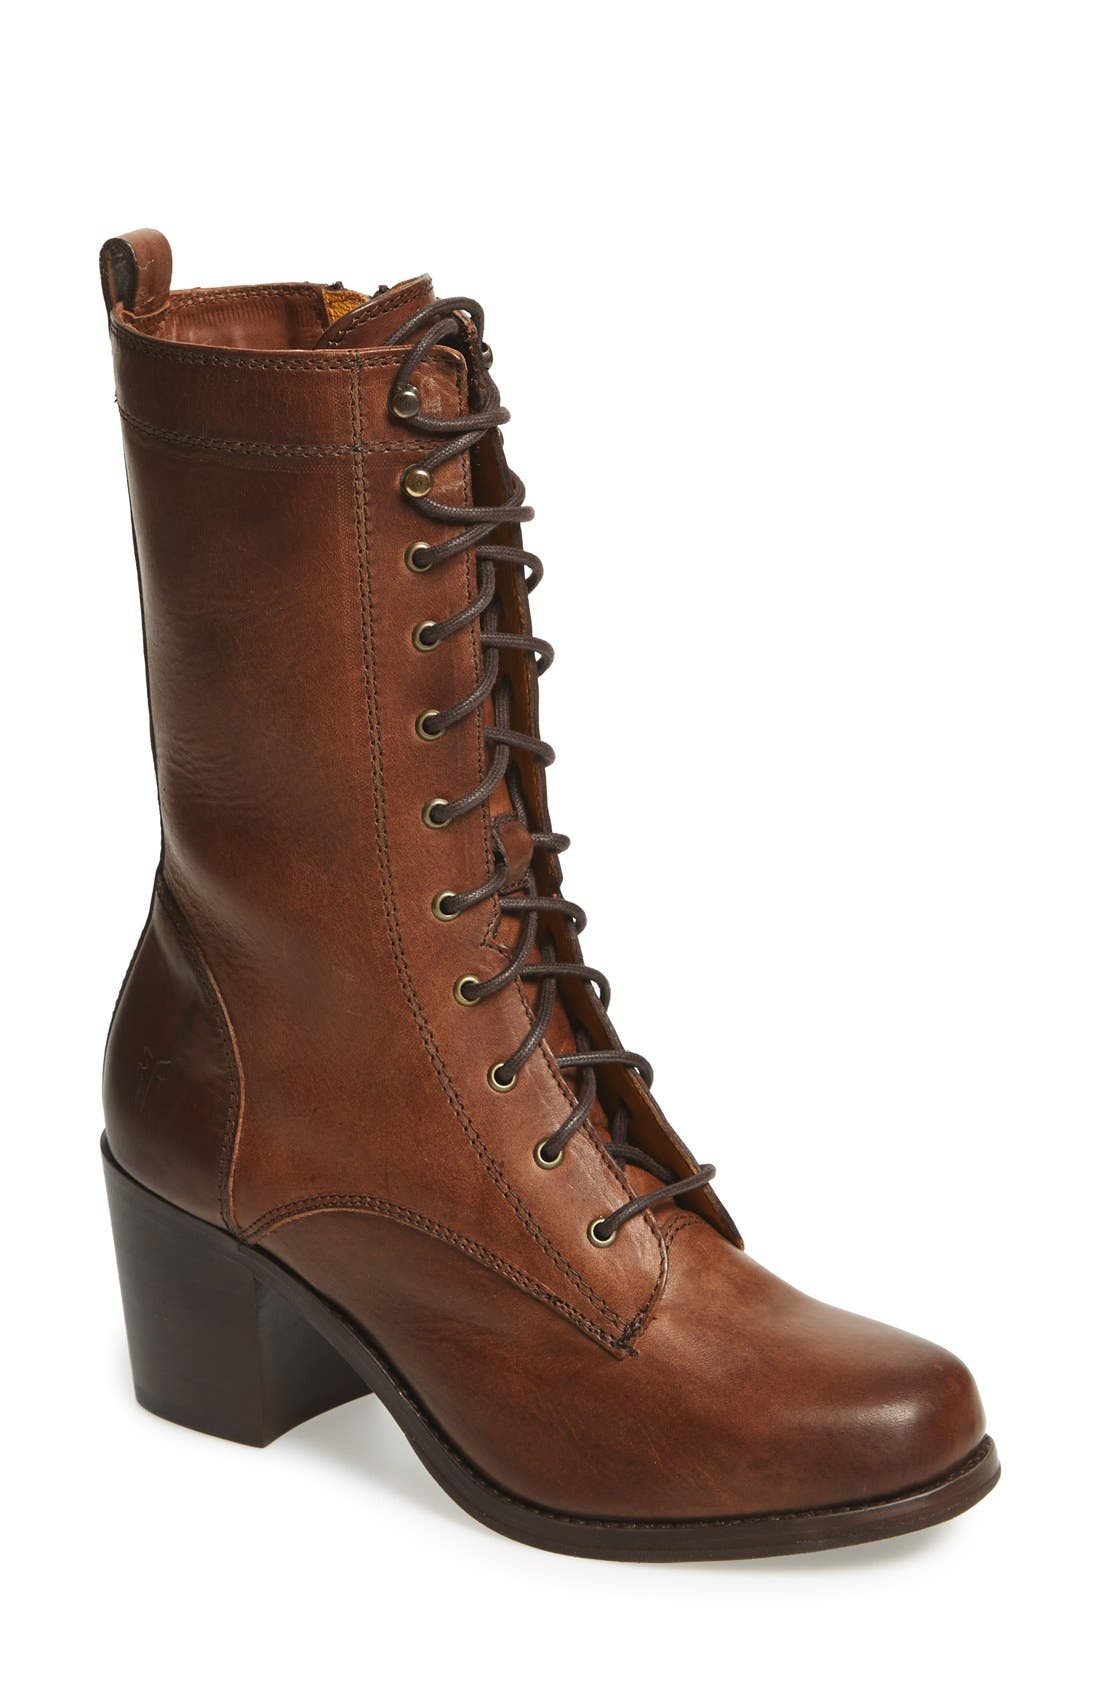 Alternate Image 1 Selected - Frye 'Kendall' Lace-Up Boot (Women)